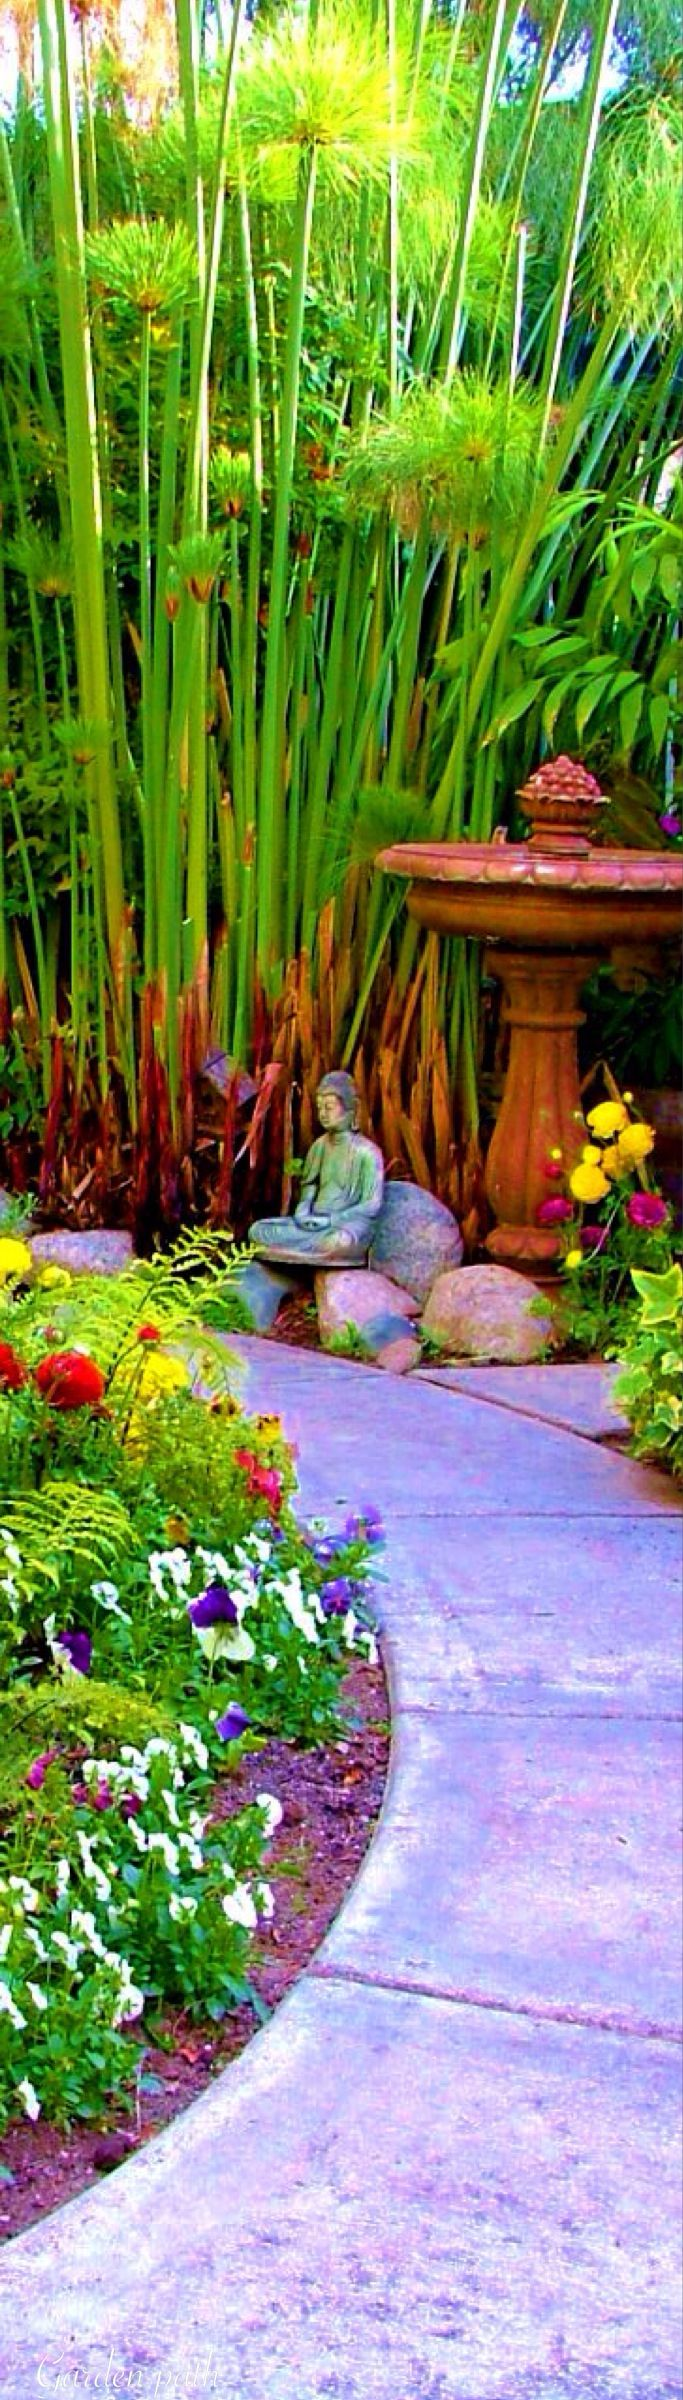 Japanese Garden Plants Best 25 Zen Gardens Ideas On Pinterest Zen Garden Design